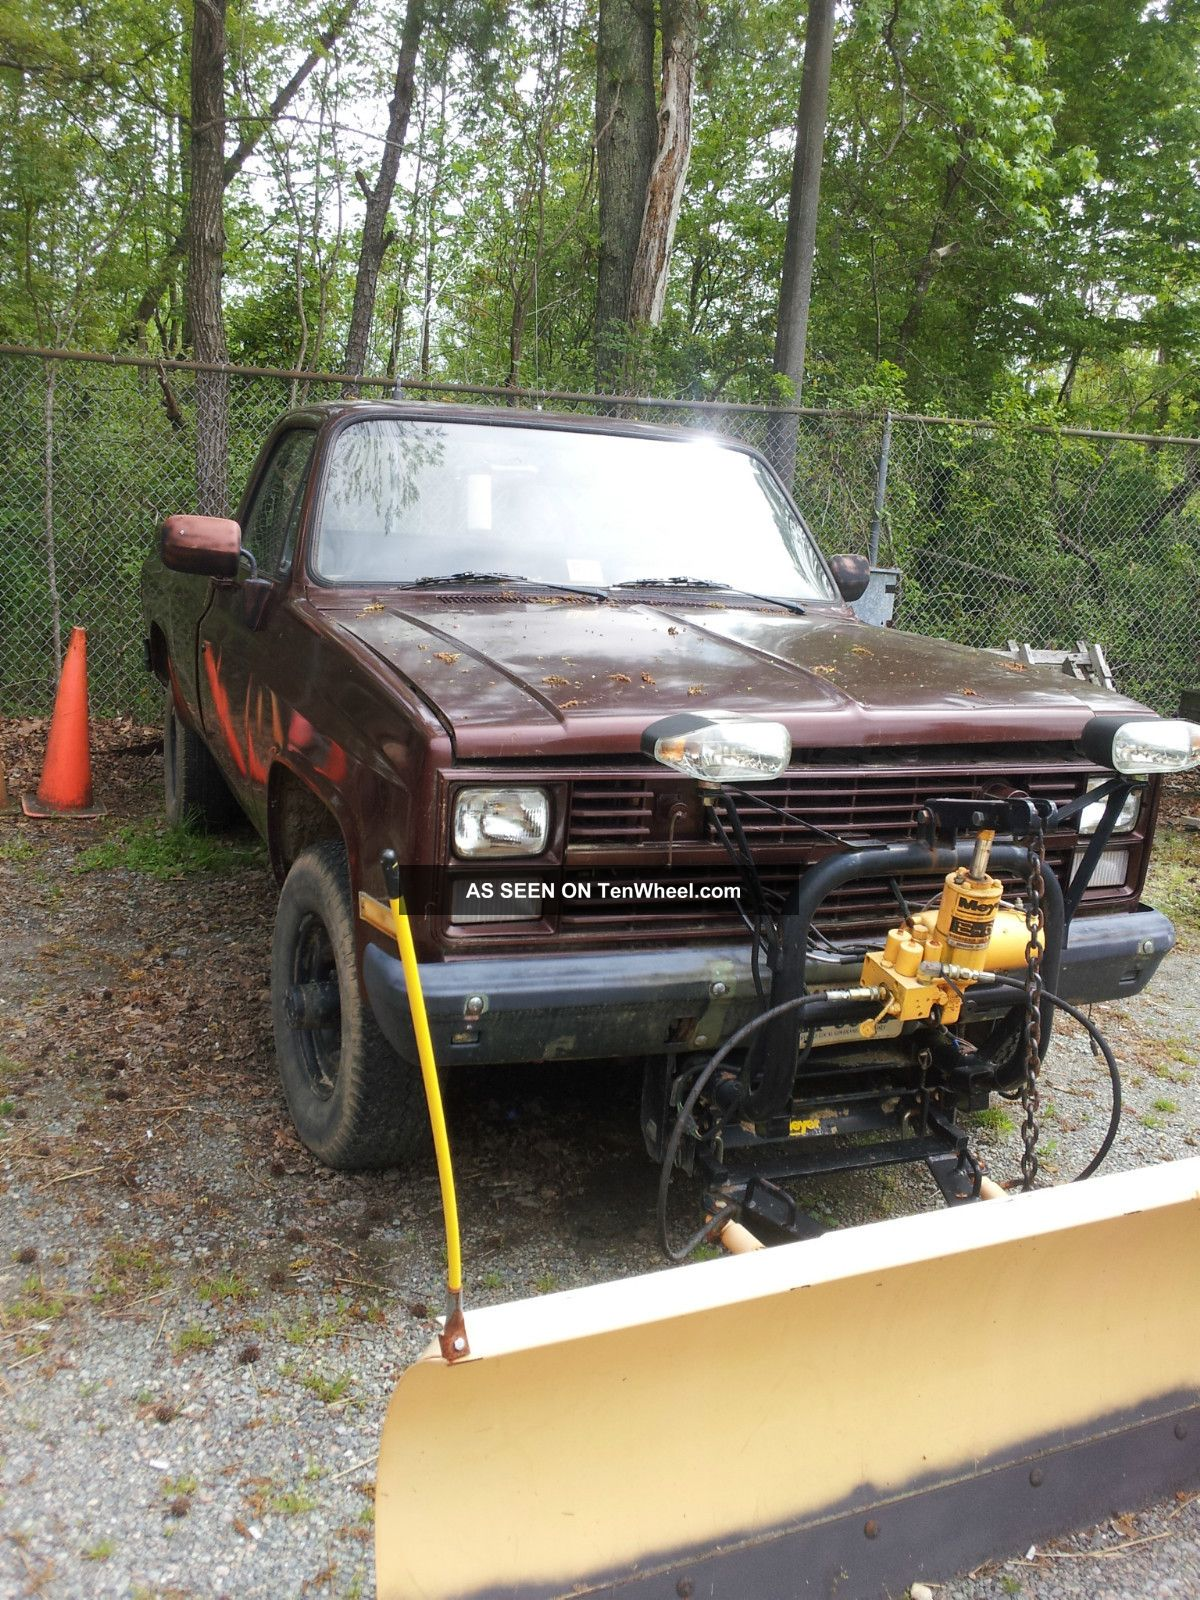 1986 M1008 Cucv Chevrolet Pickup W / Plow (government Surplus) Other Pickups photo